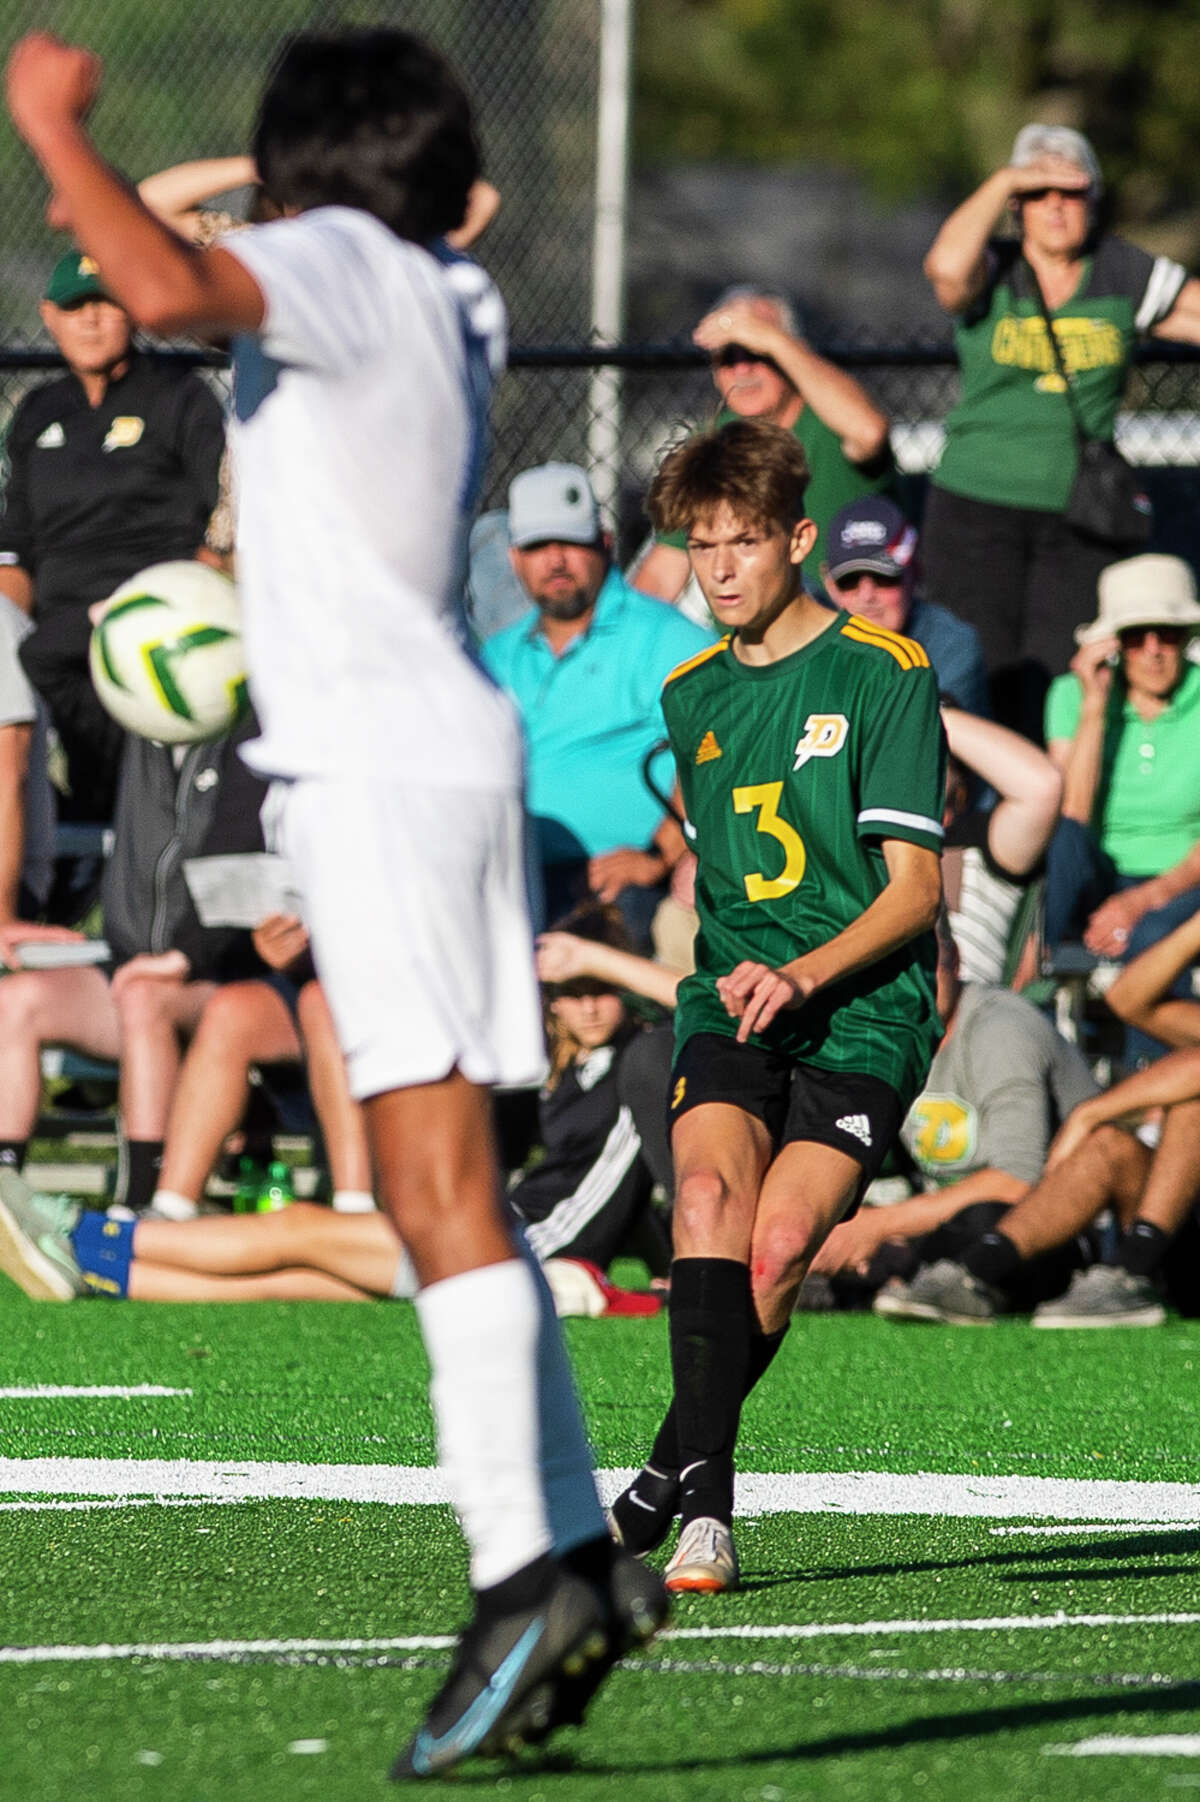 Dow's Jonah Dahn takes a free kick during the Chargers' game against Midland Wednesday, Sept. 29, 2021 at H. H. Dow High School. (Katy Kildee/kkildee@mdn.net)